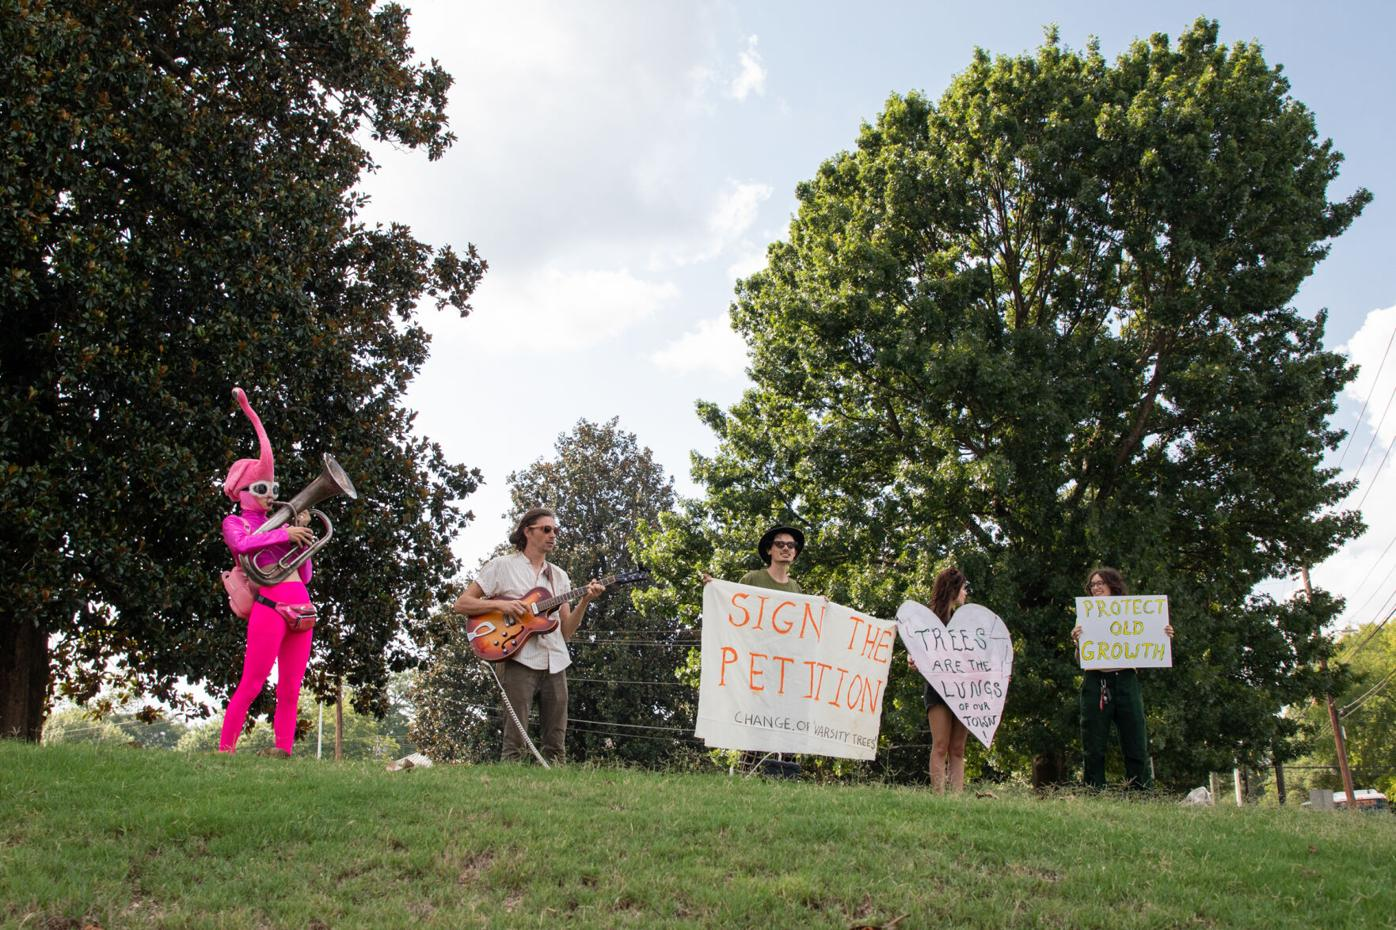 PHOTOS: Athens residents rally to save greenspace